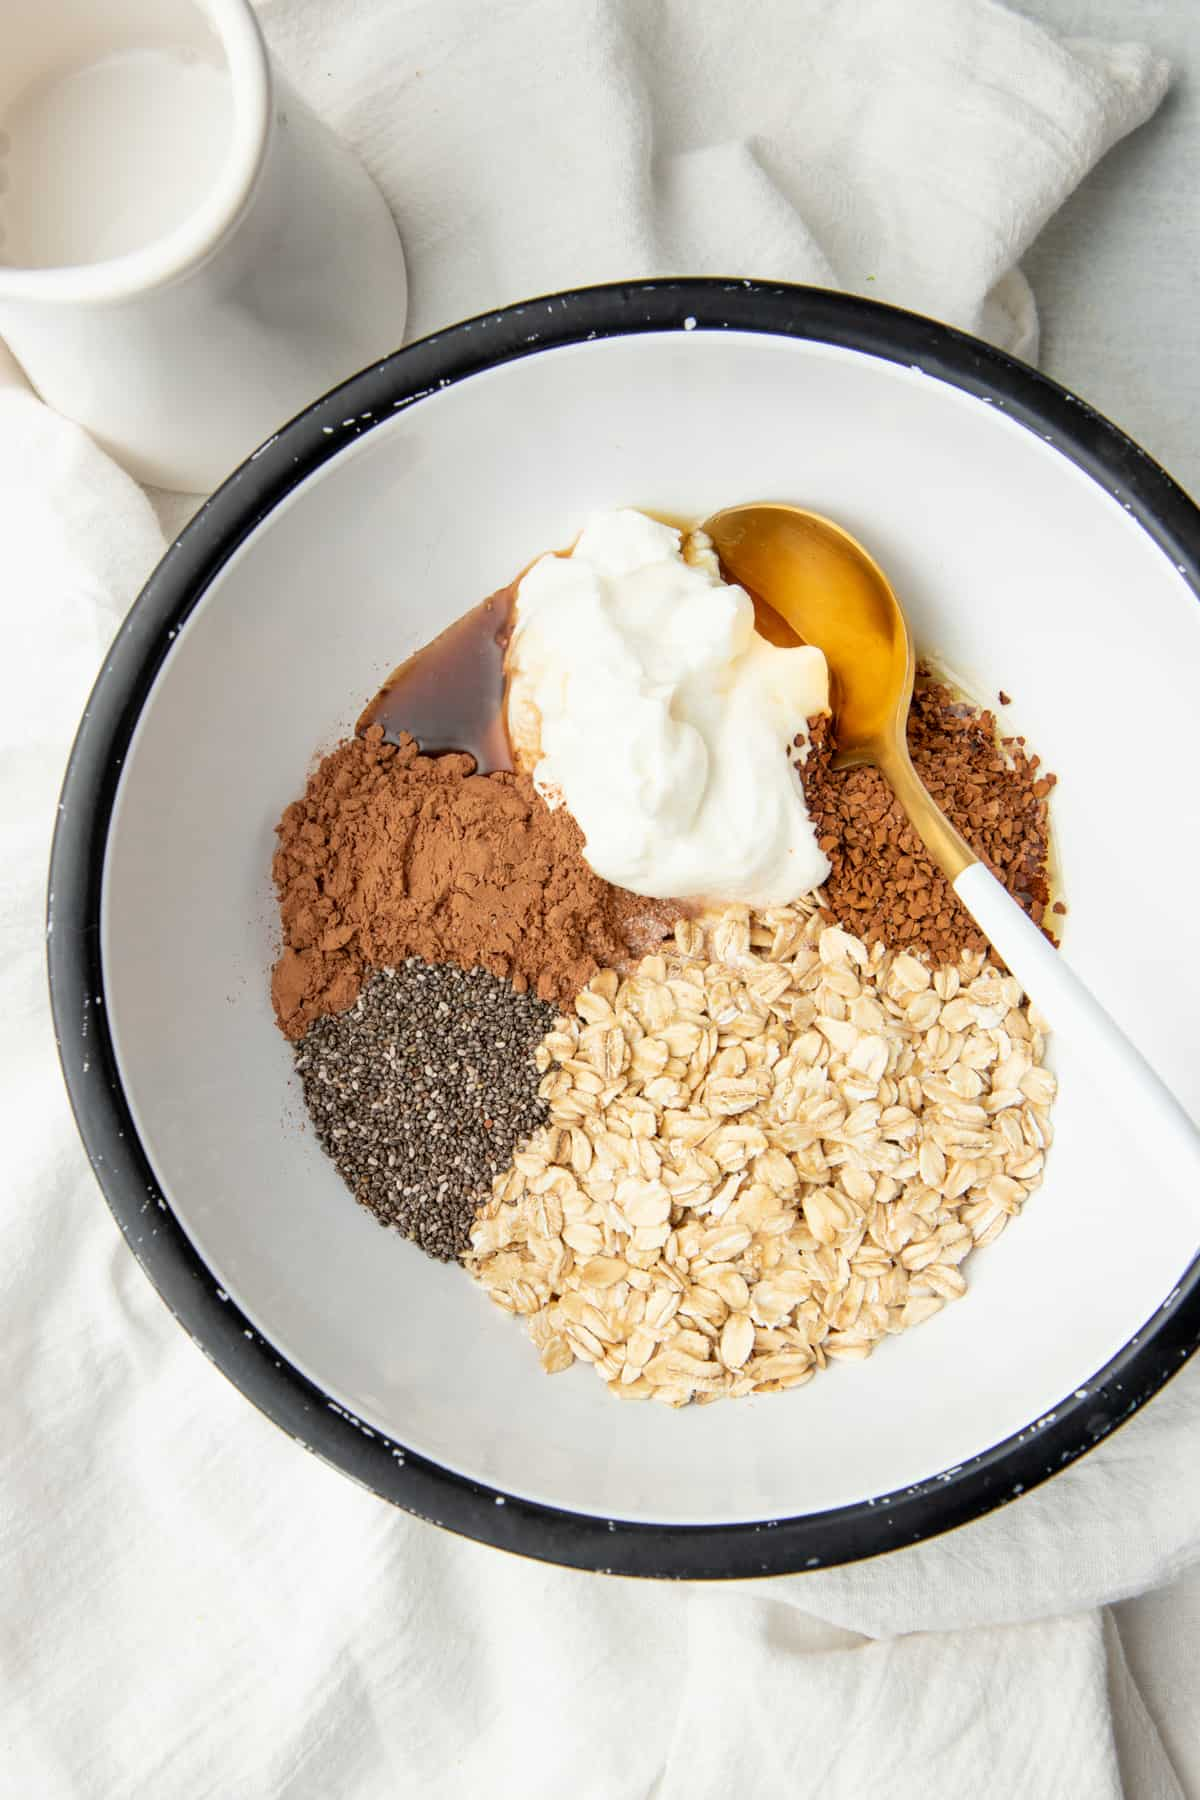 A golden spoon rests in a white bowl. Ingredients for mocha overnight oats are arranged in the bowl.